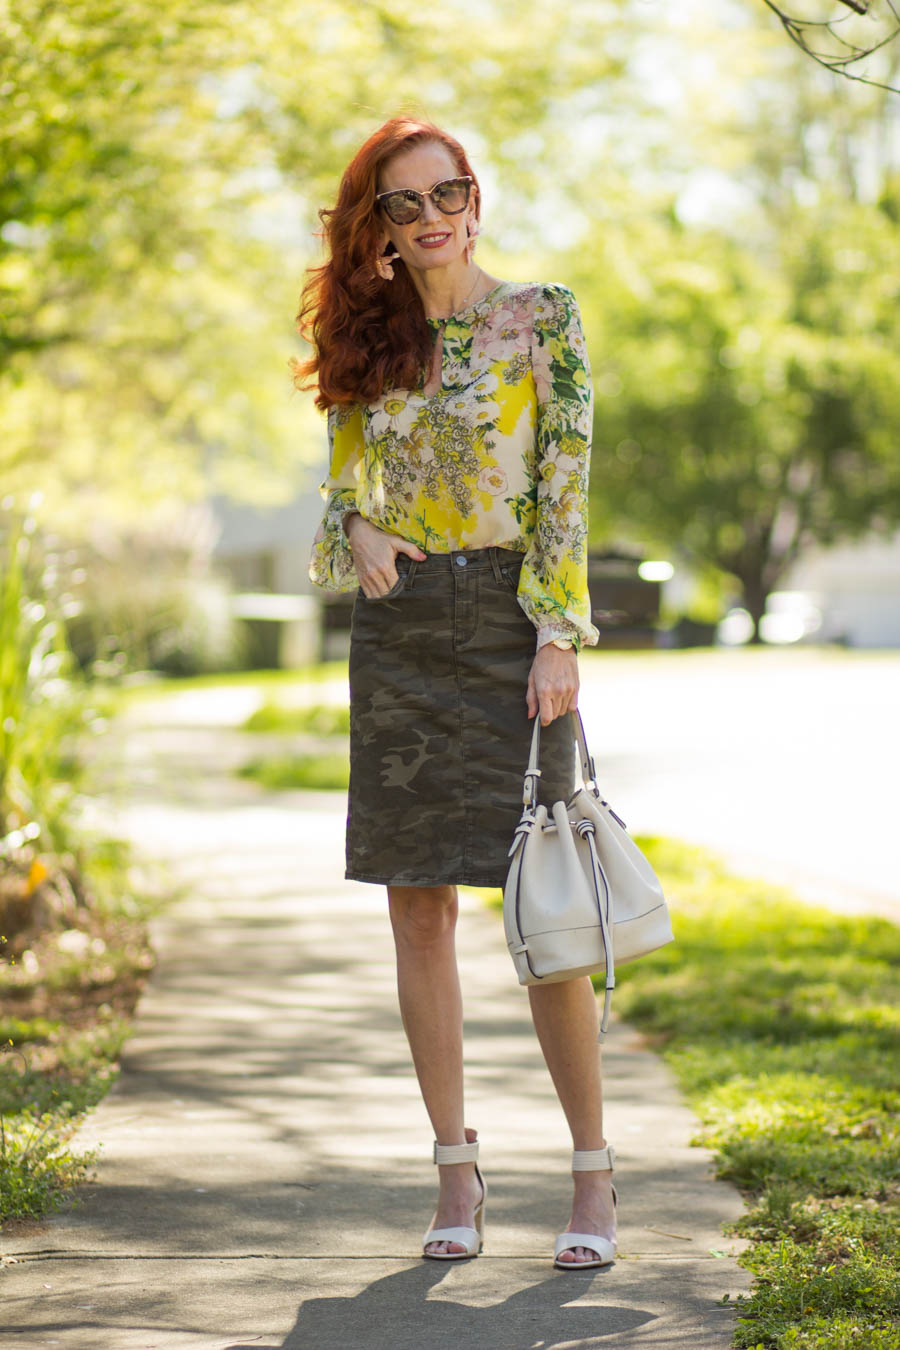 Spring women's fashion